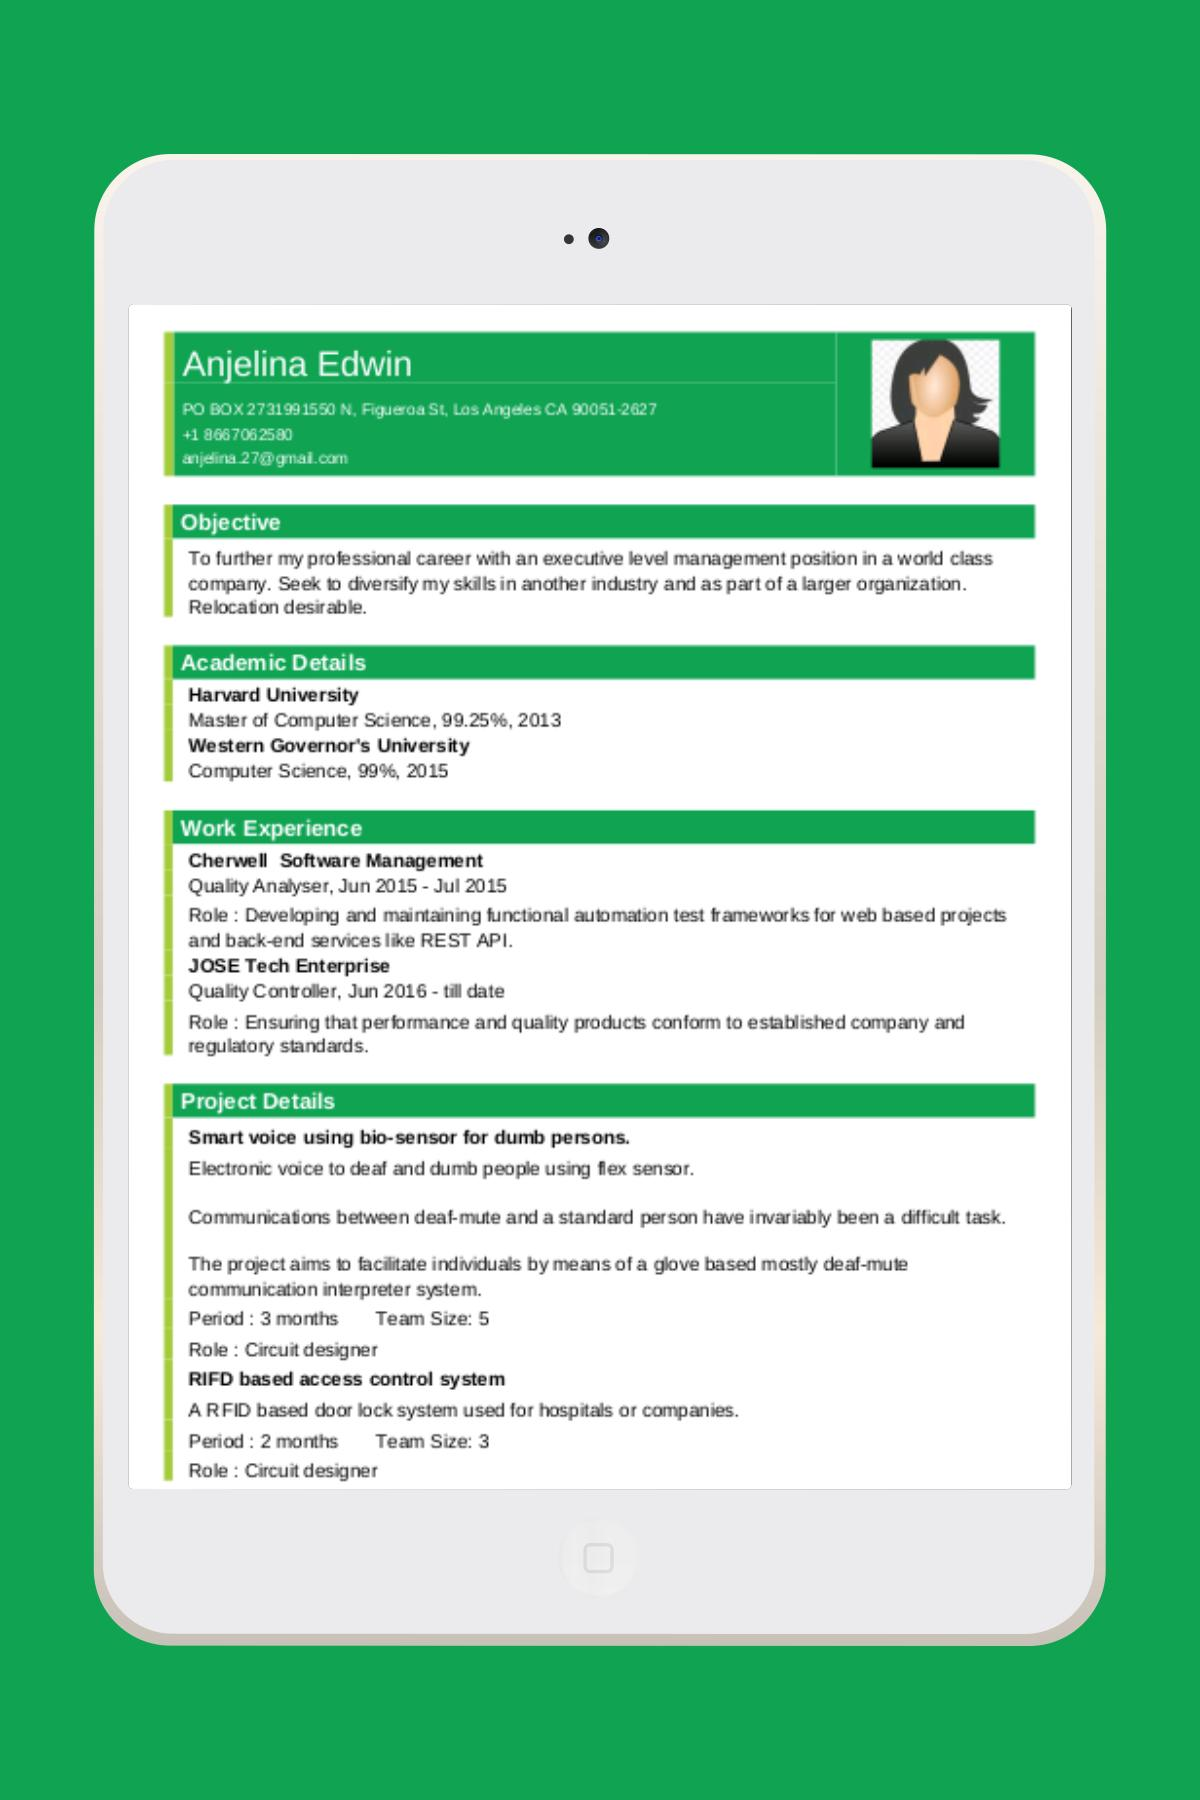 Resume Builder App Free CV Maker with PDF Format for Android